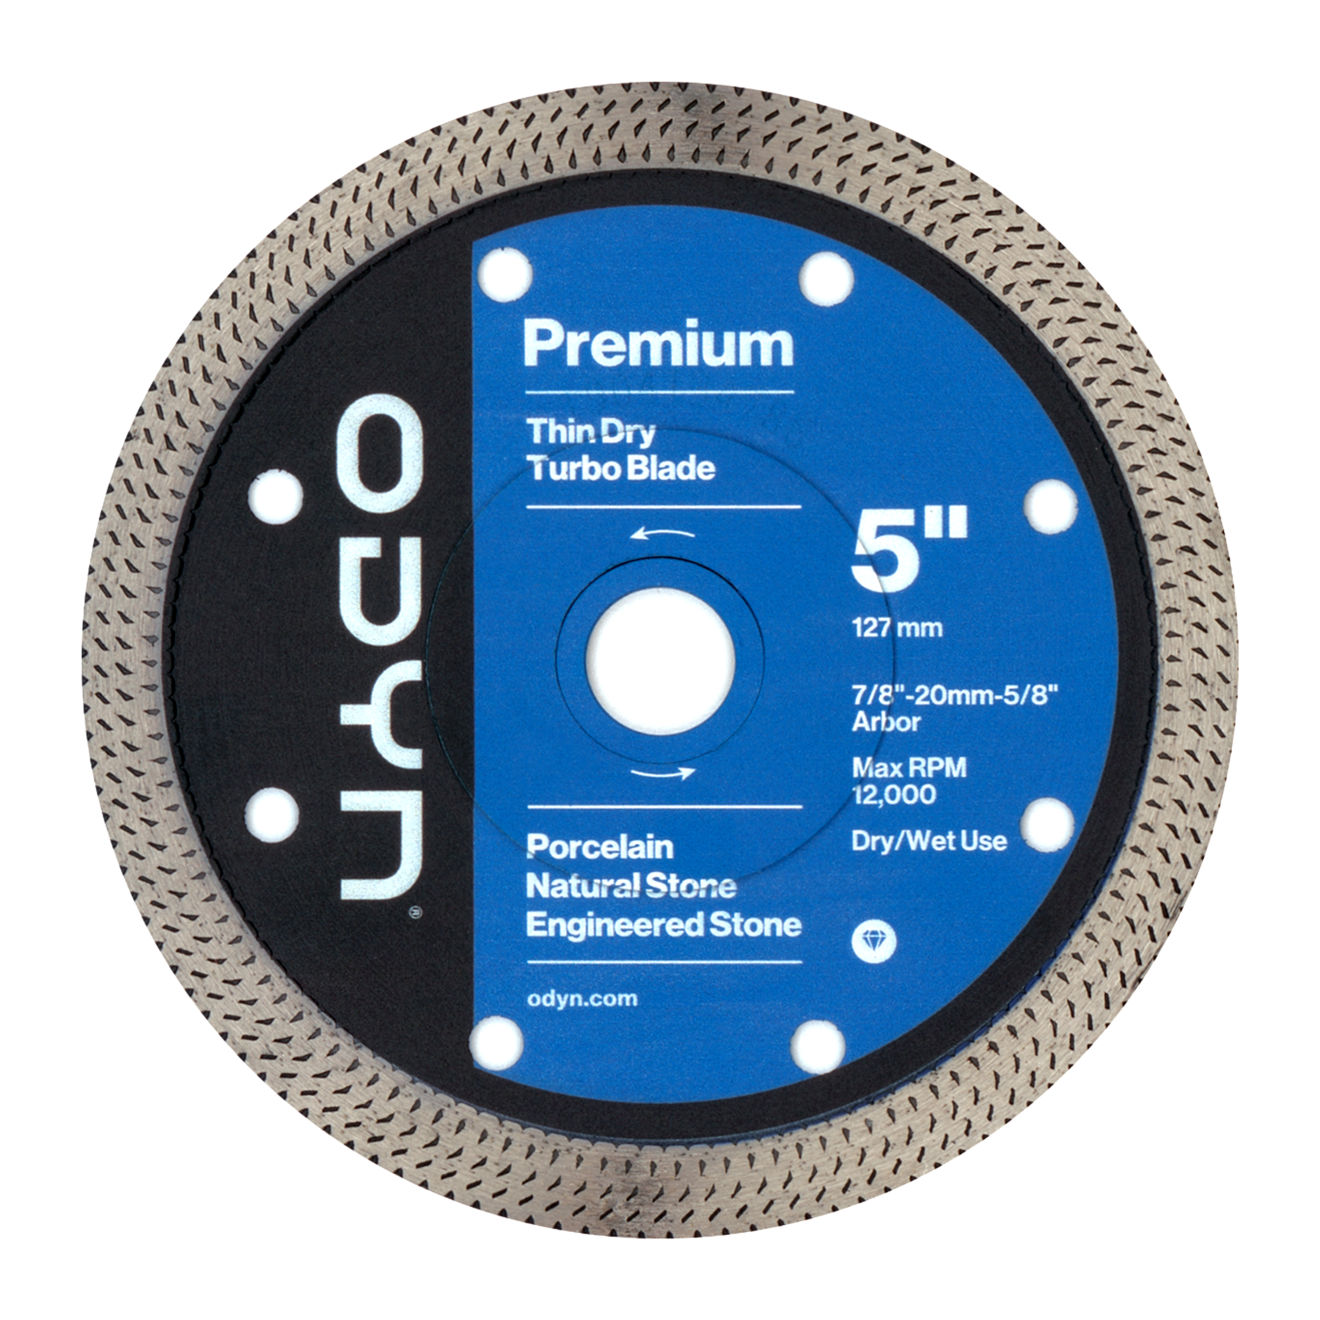 Odyn 5 in. Premium Thin Dry Turbo Blade